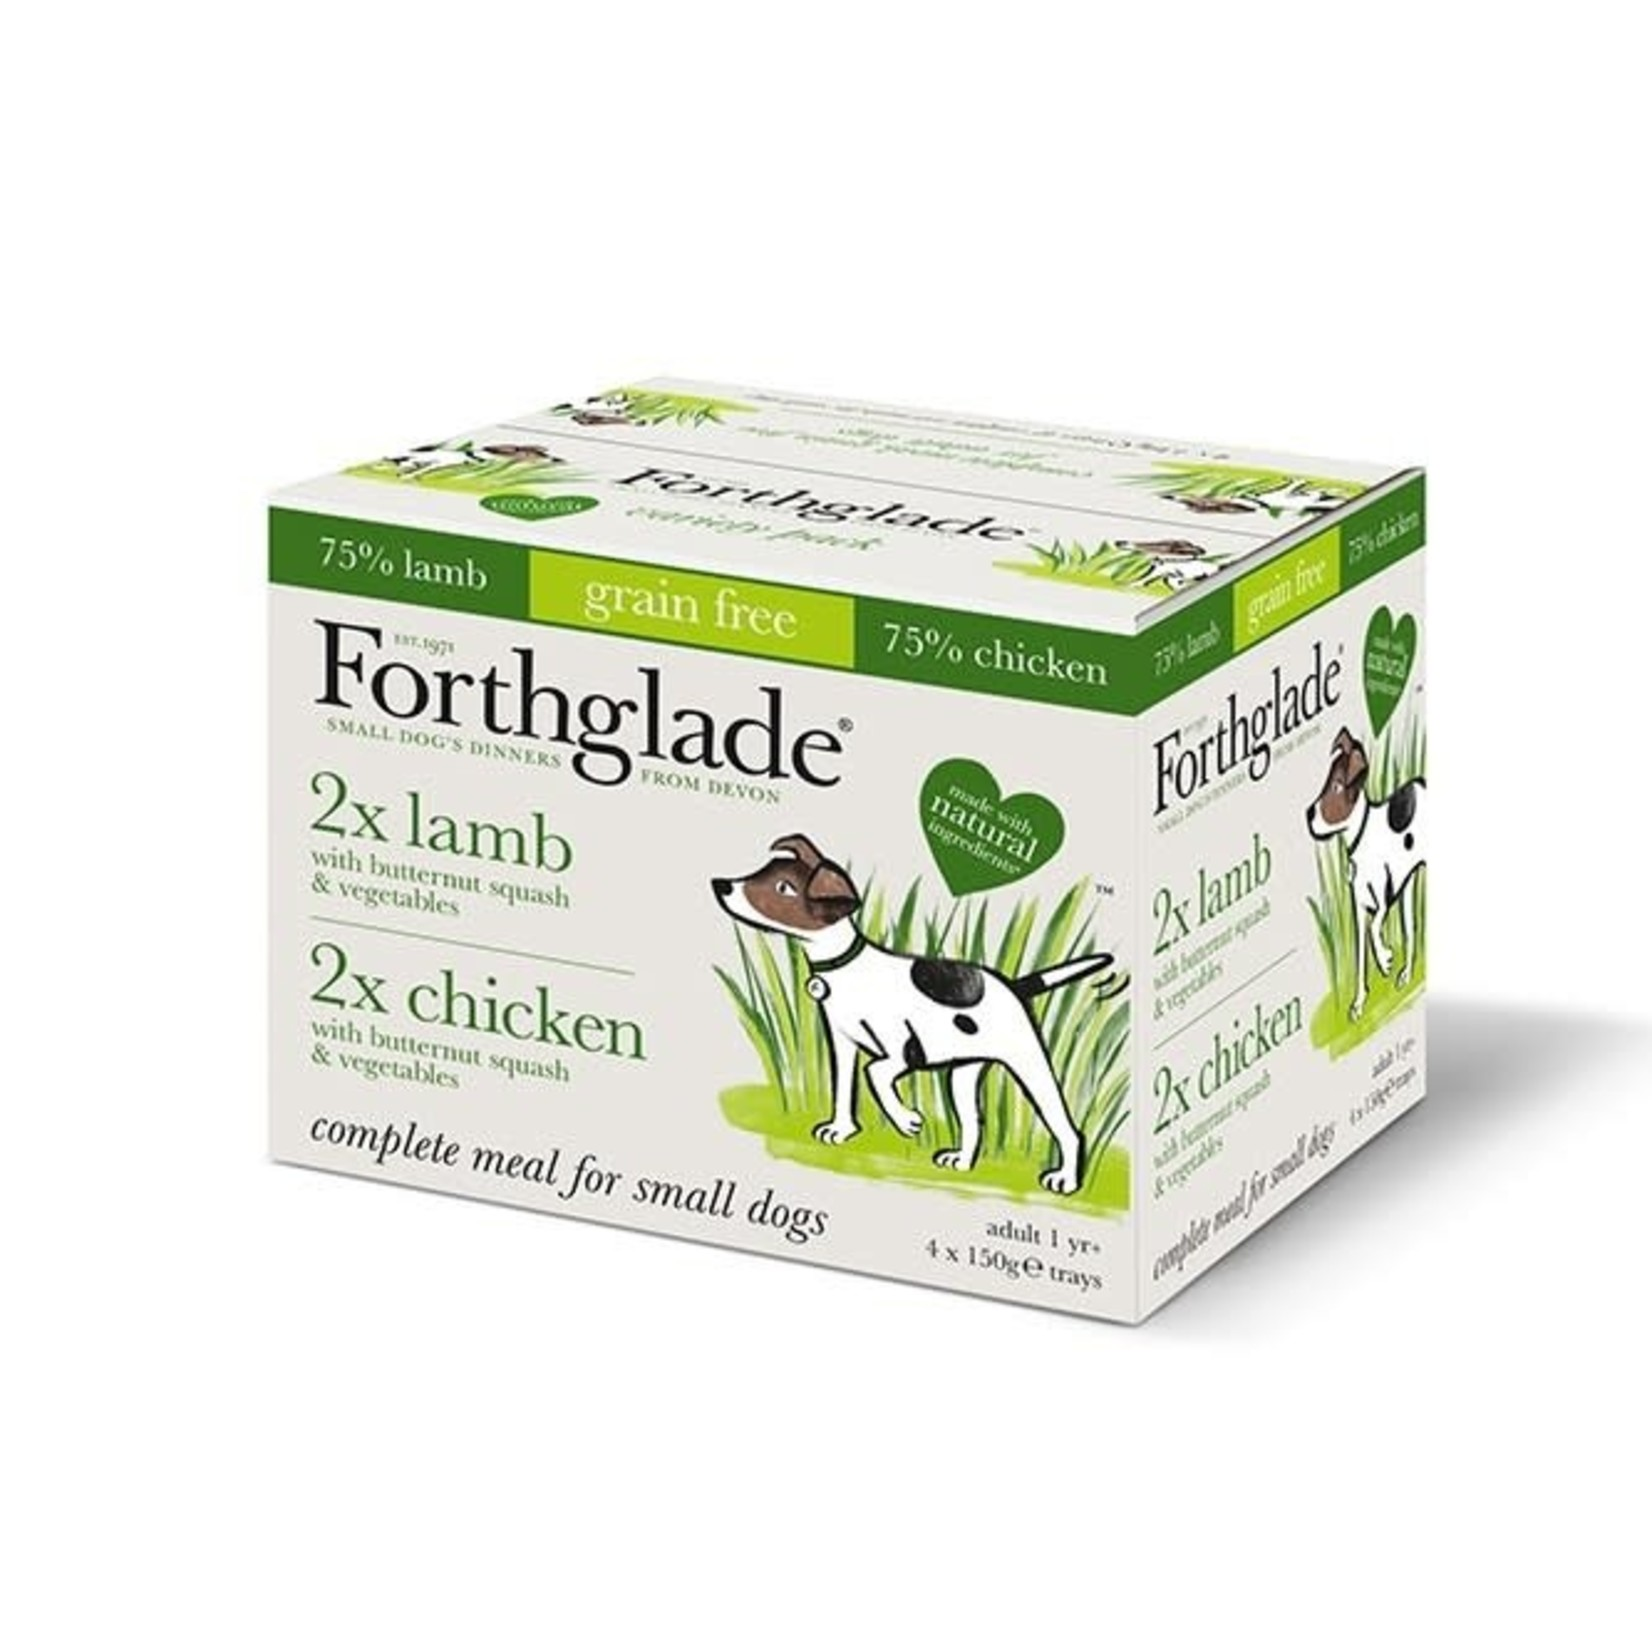 Forthglade Complete Grain Free Chicken & Lamb  Adult  Wet Dog Food, 150g, 4 pack